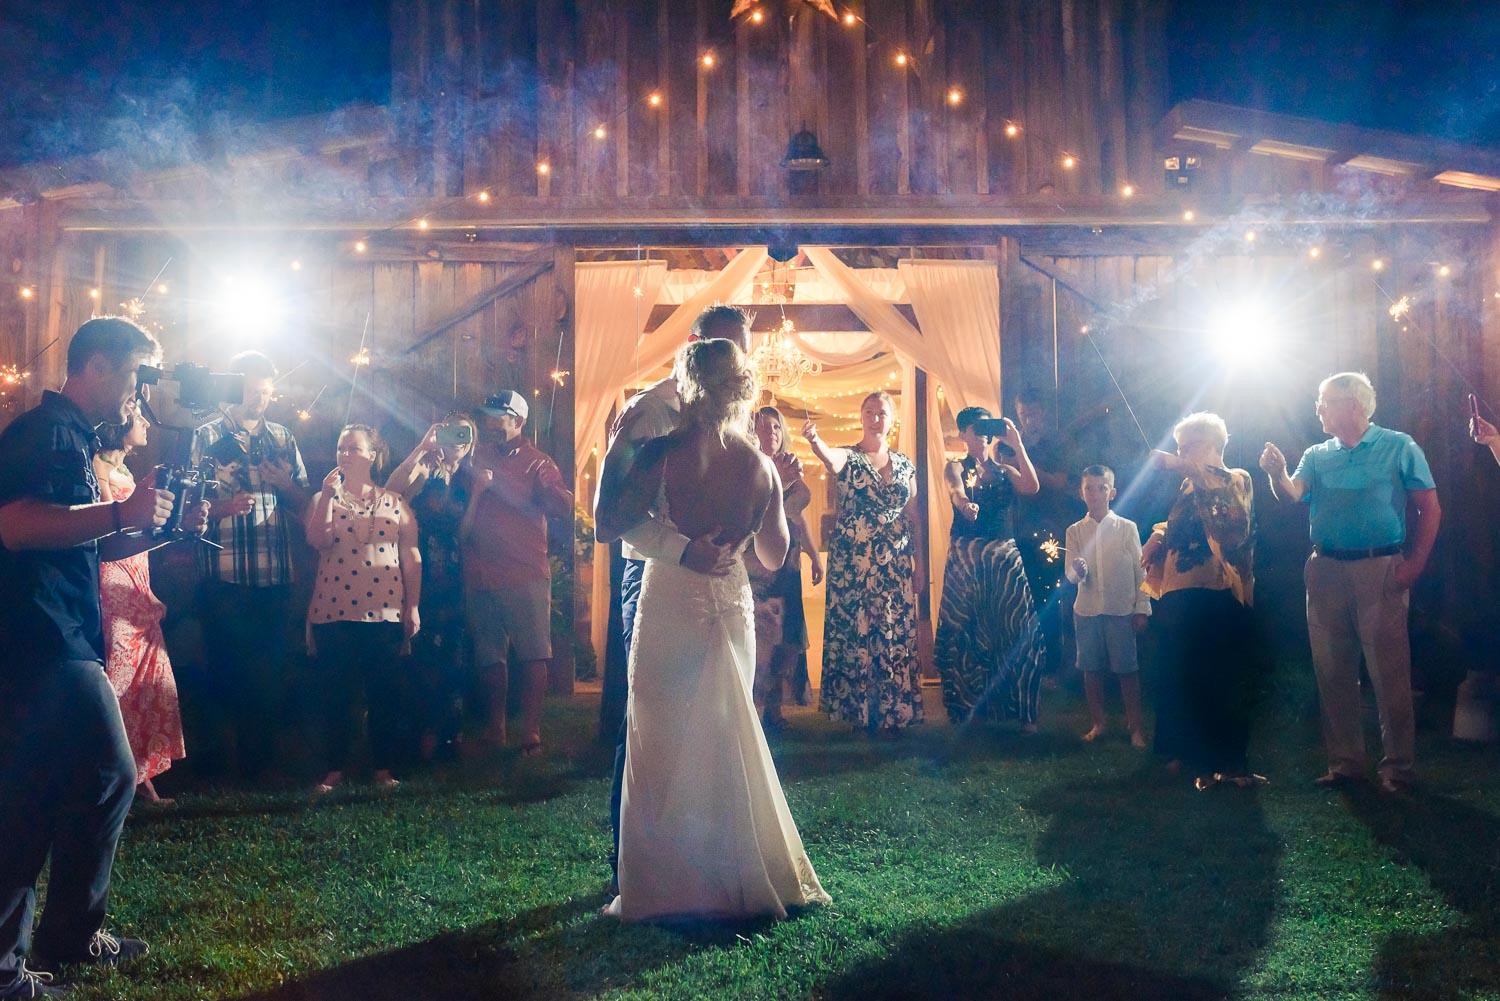 wedding couple dancing their first dance with guests standing in a circle holding sparklers in front of the Barn at Drewia Hill near Chattanooga TN